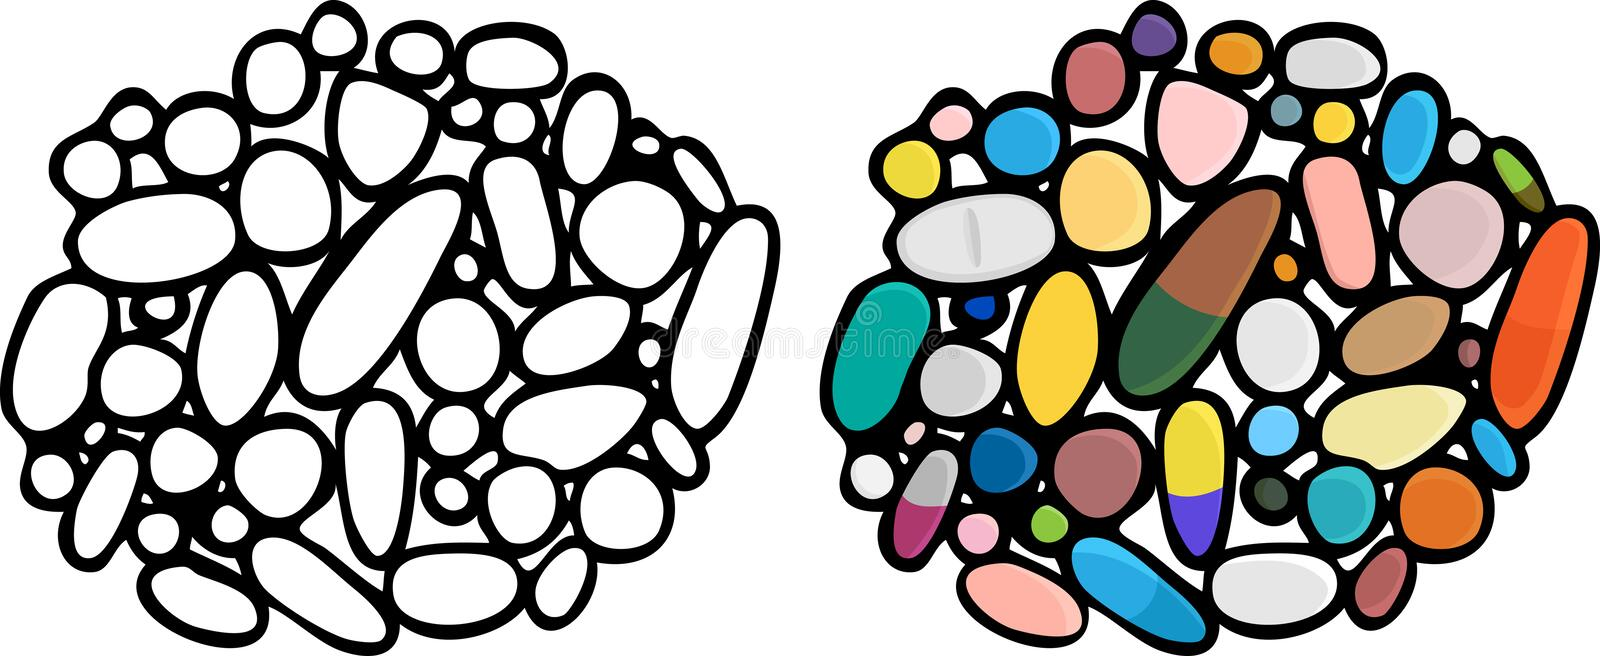 Meds, Pills and Drugs III. Illustrations of a third set of drugs, medications and supplements vector illustration